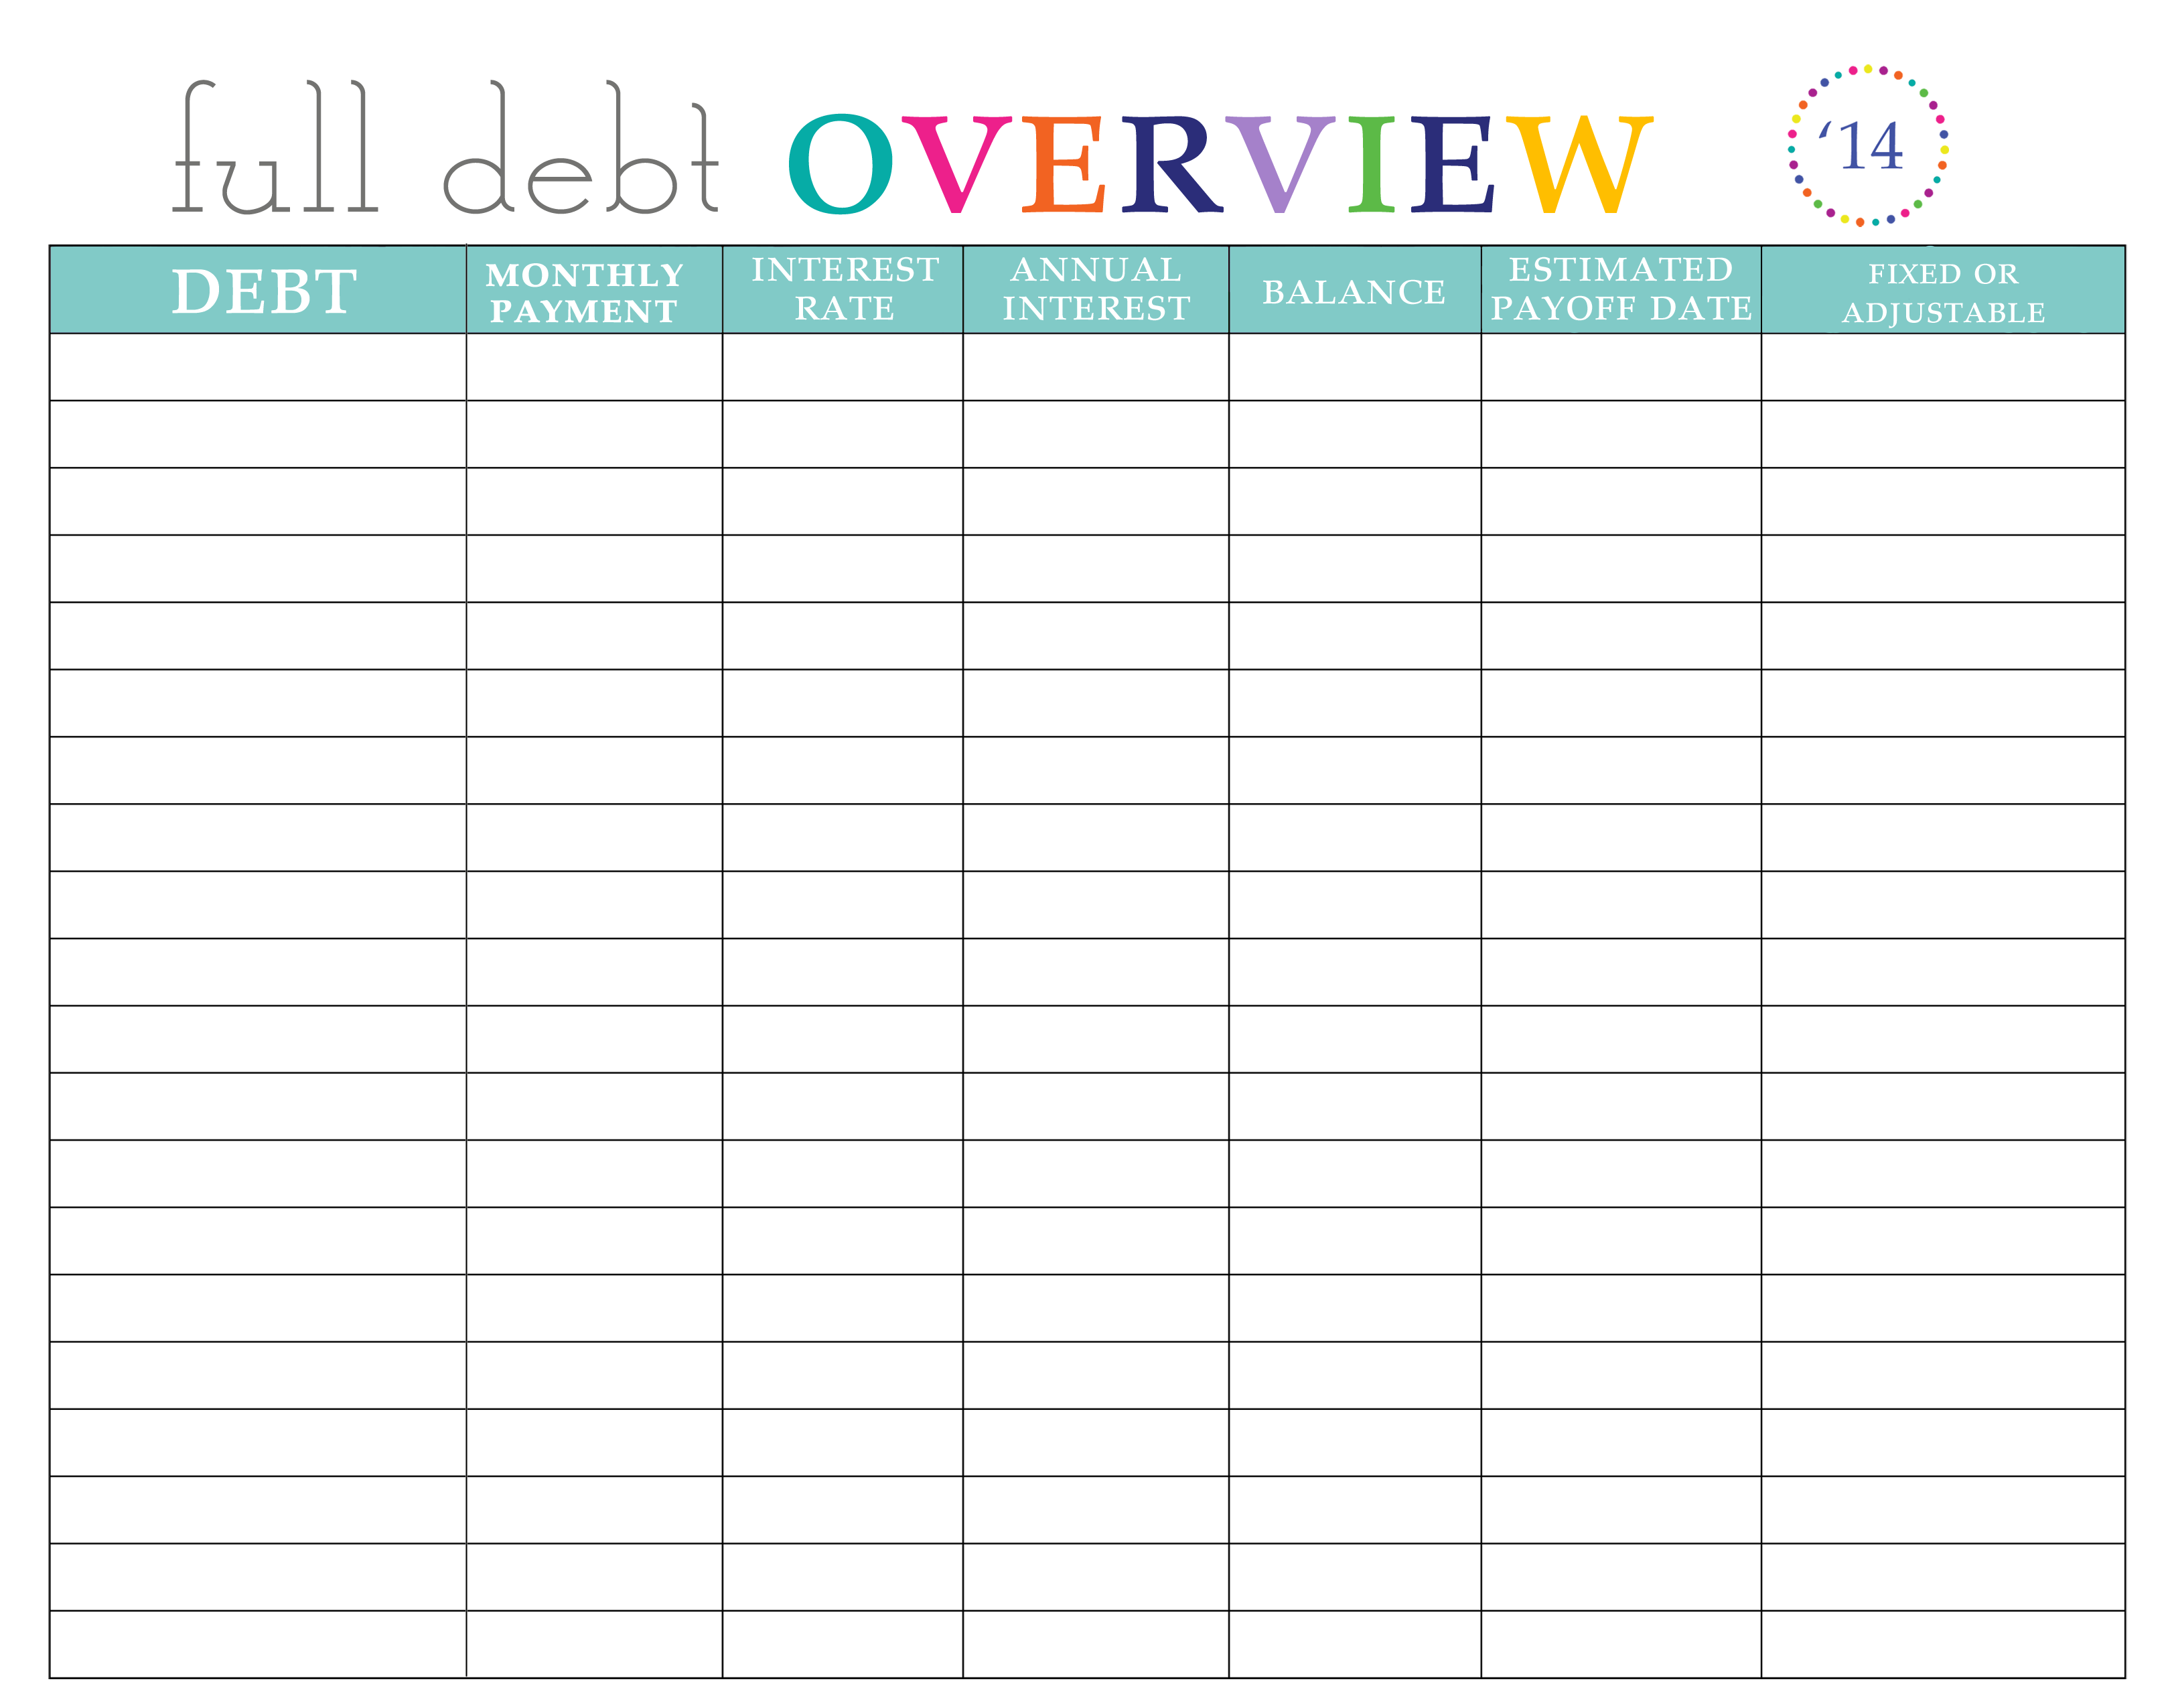 worksheet Debt To Income Worksheet calculate your debt to income worksheet answers take charge today free spreadsheet templates calculation worksheet